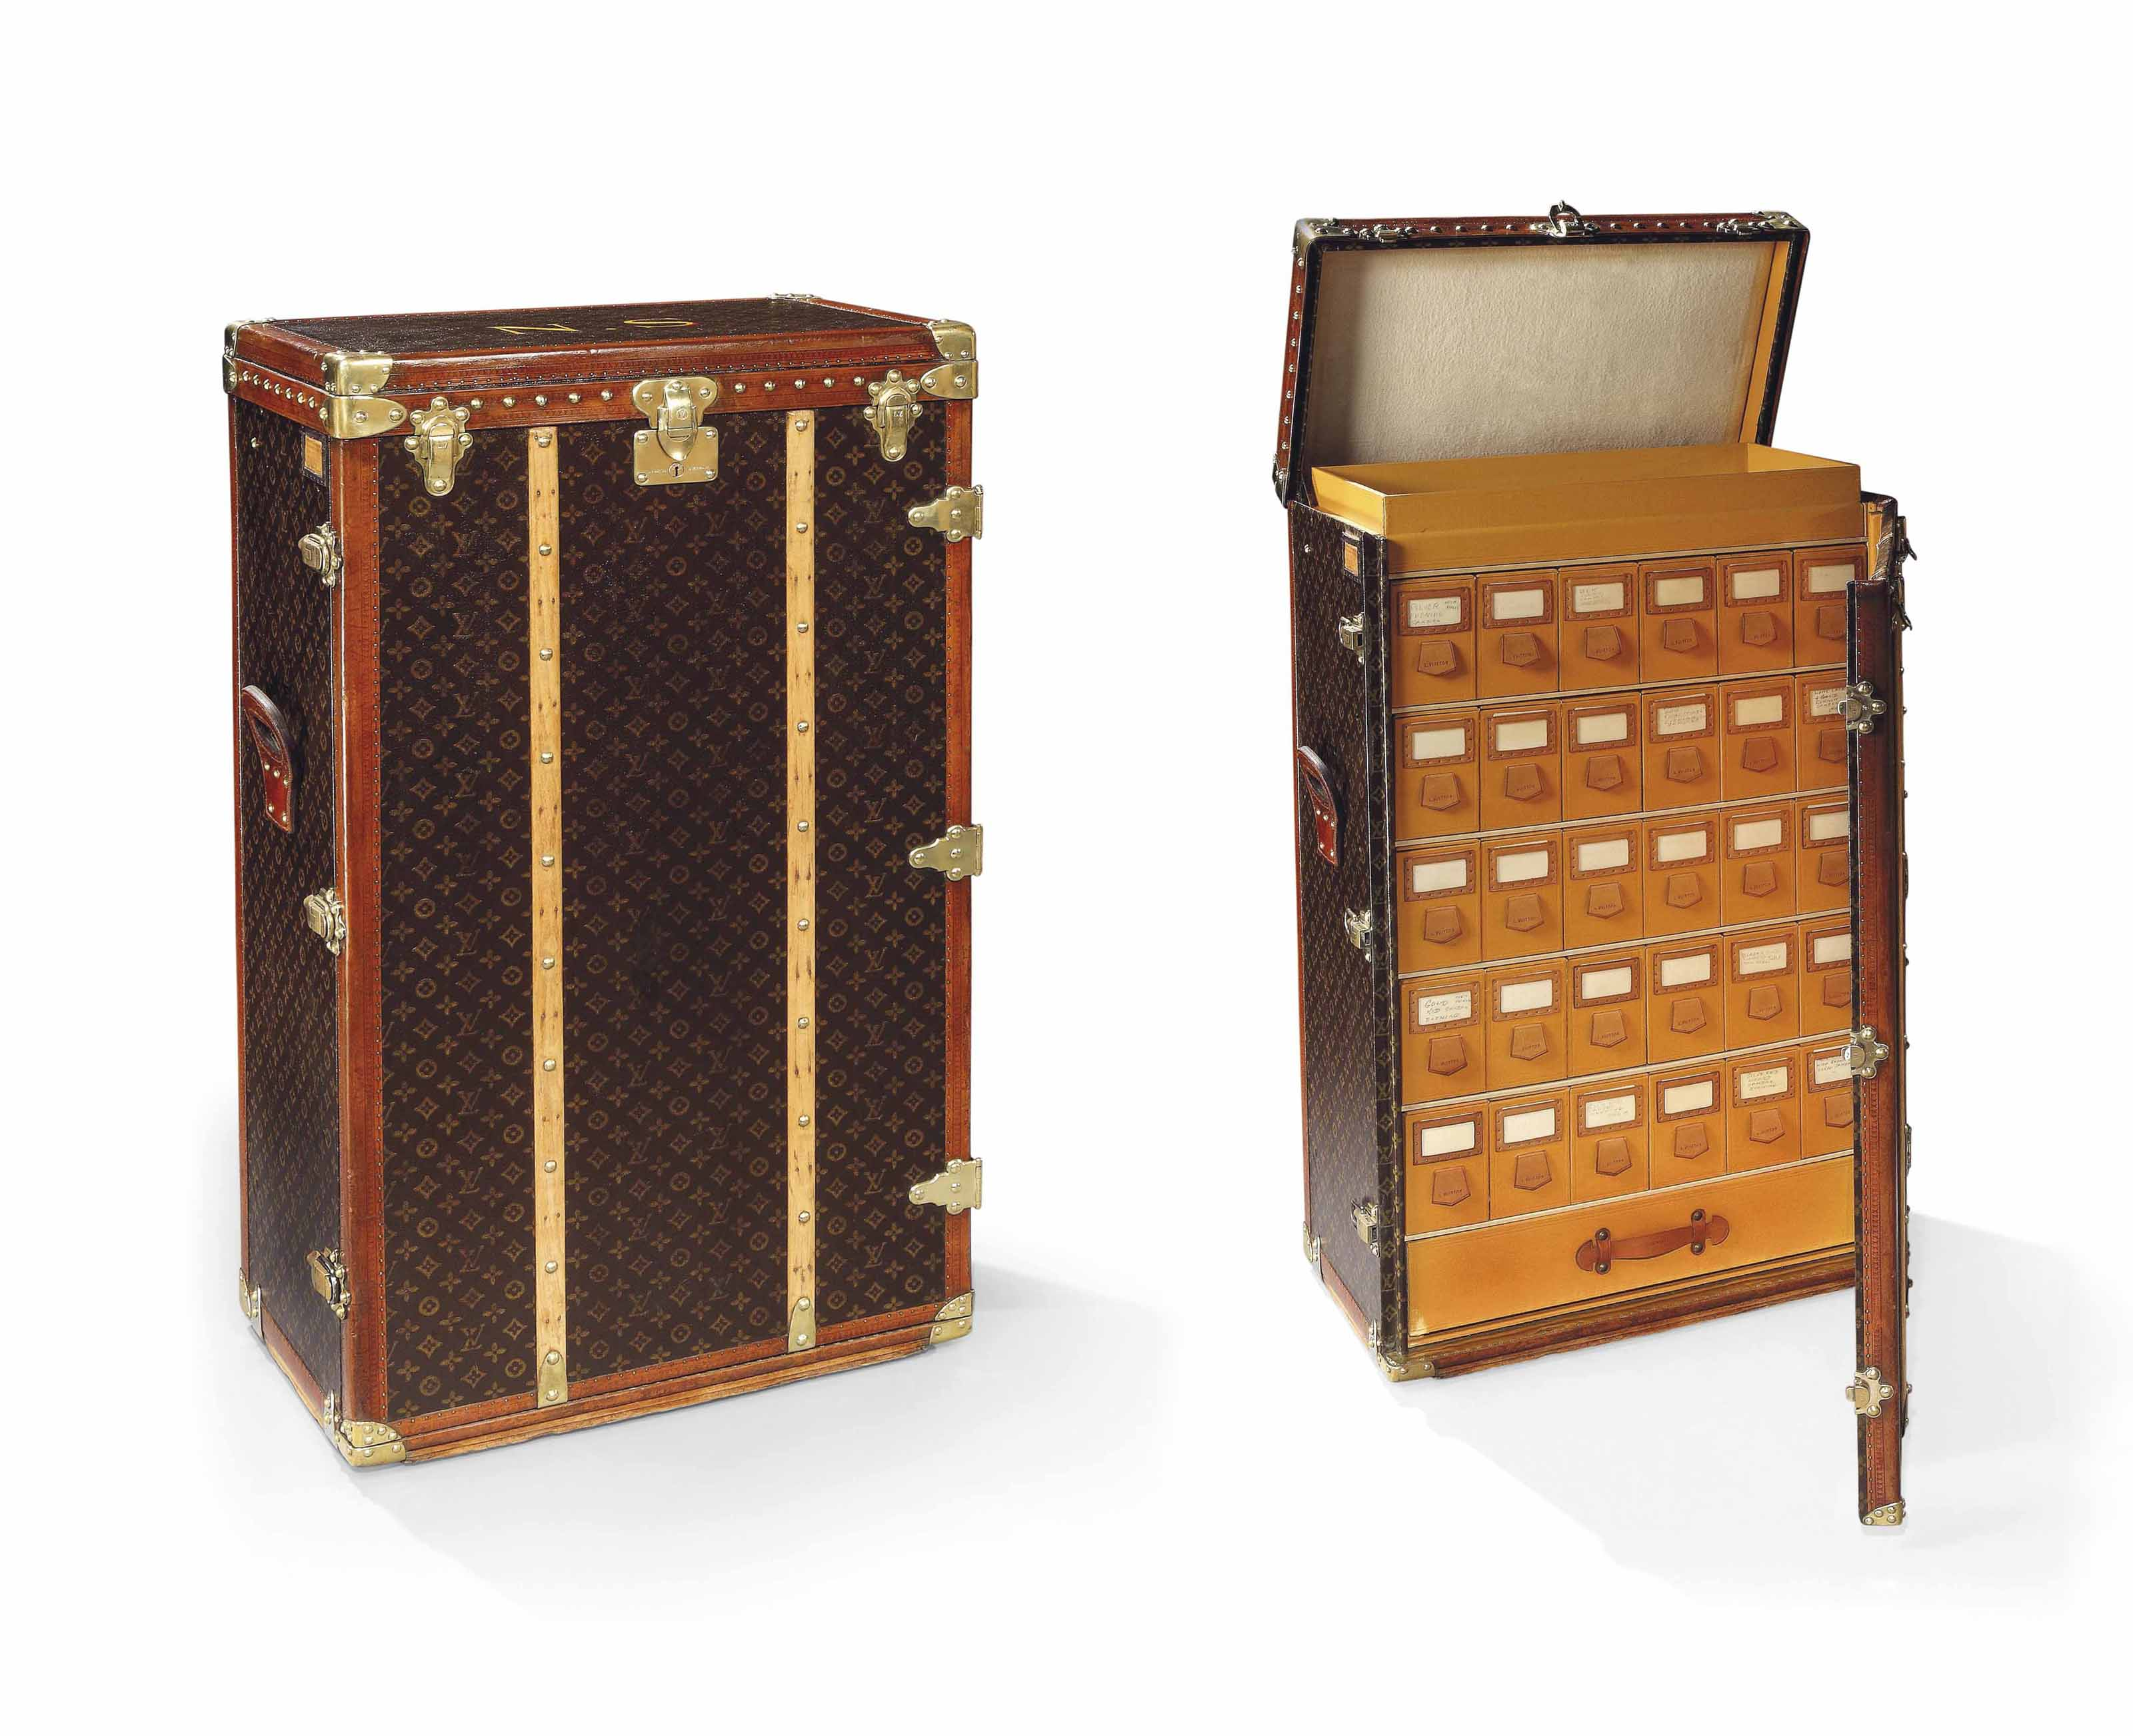 A RARE MONOGRAM CANVAS SHOE TRUNK ONCE OWNED BY NORMA SHEARER